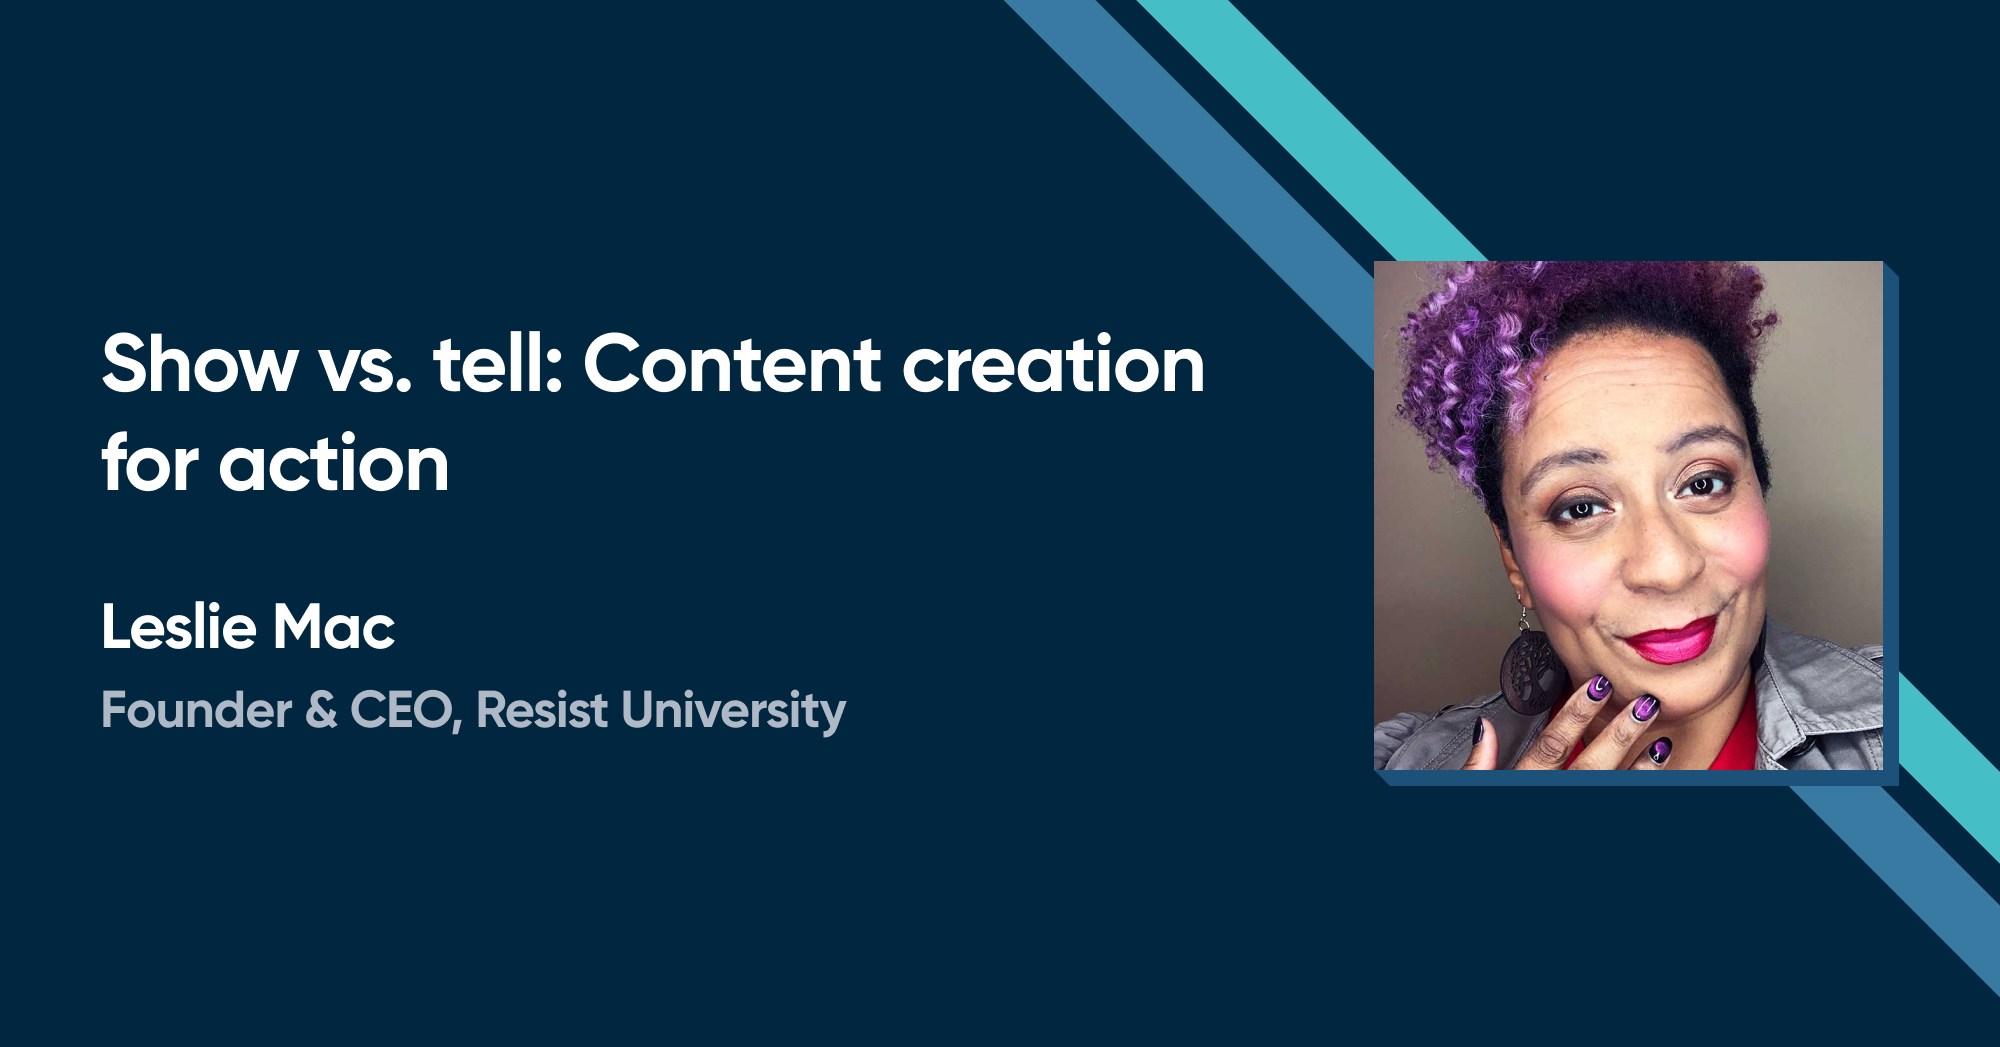 Leslie Mac - Show vs. tell: Content creation for action